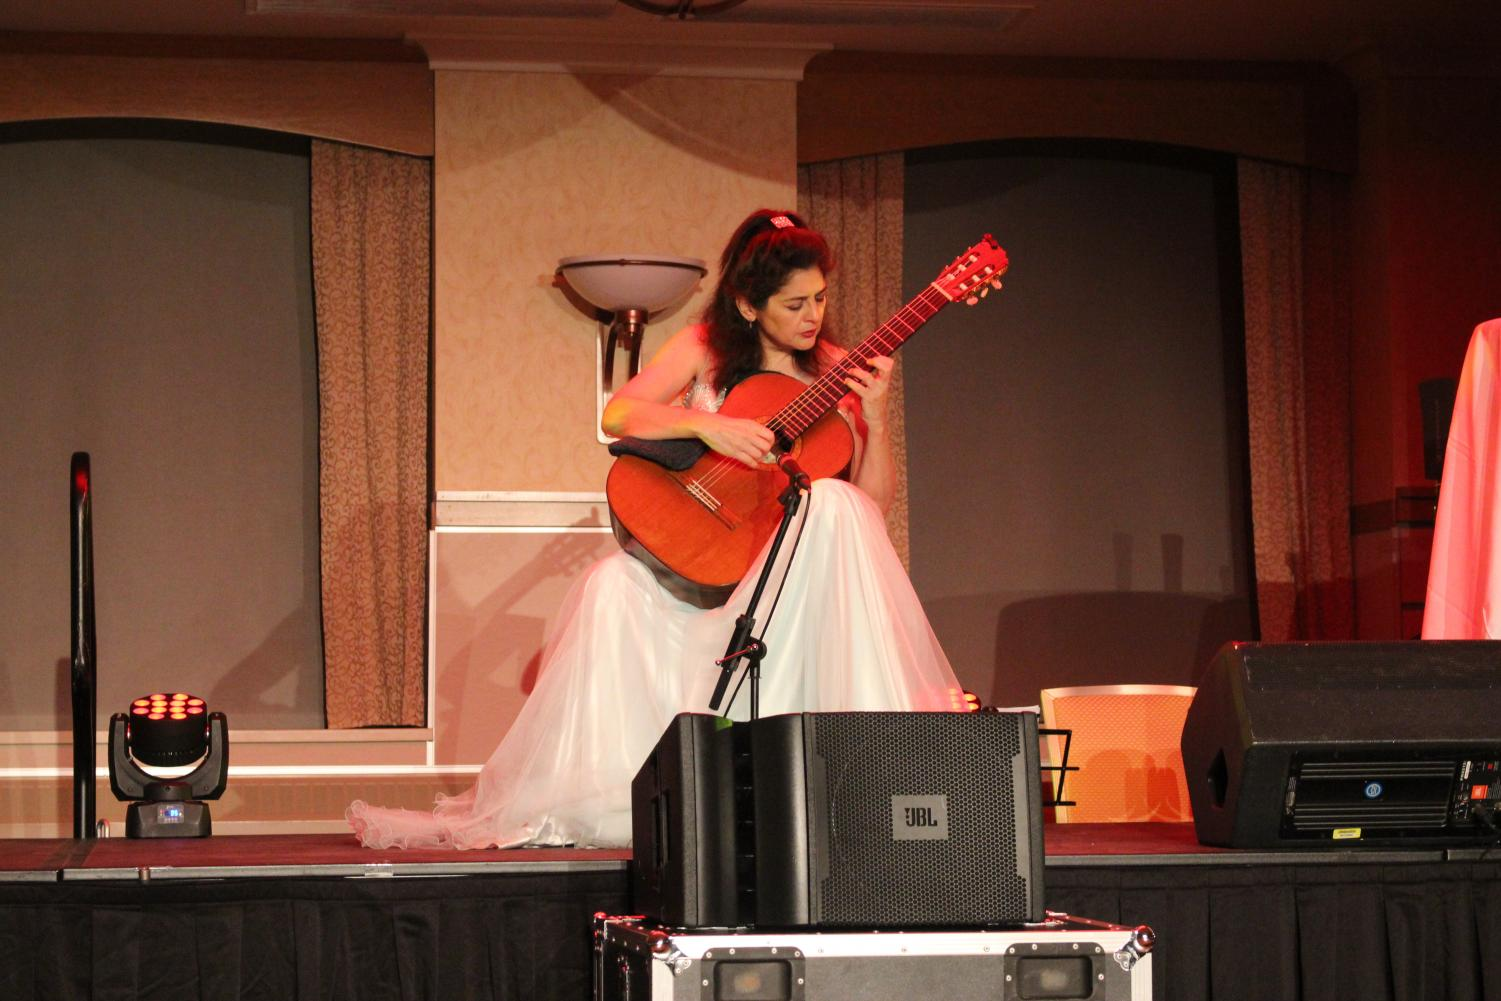 The Norooz celebration often features performers and food including comedians, dance shows and more! This year is sure to be a success that you won't want to miss!